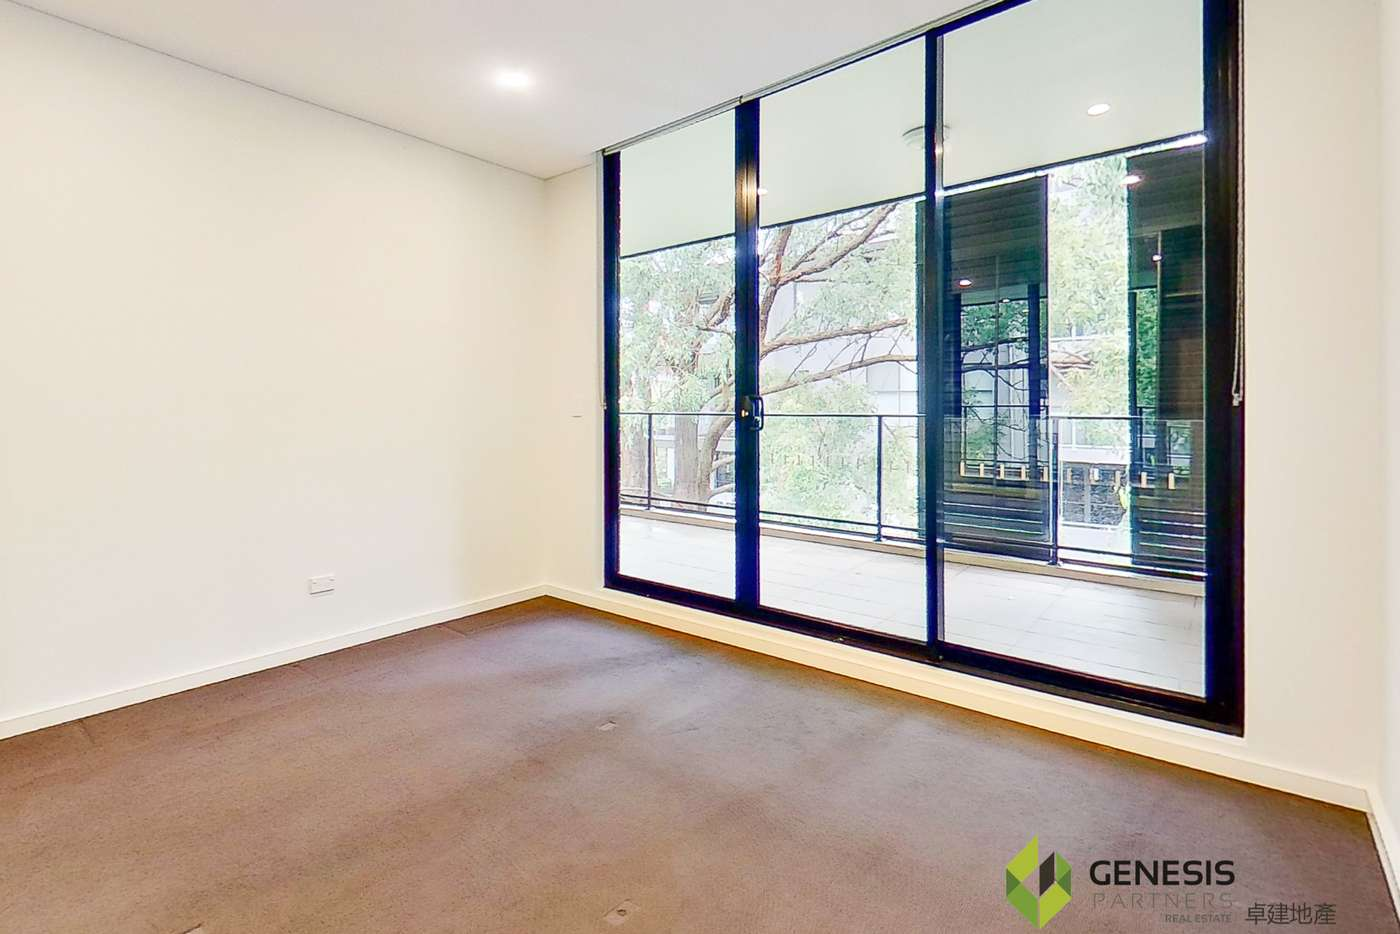 Sixth view of Homely apartment listing, 35/217-221 Carlingford Road, Carlingford NSW 2118